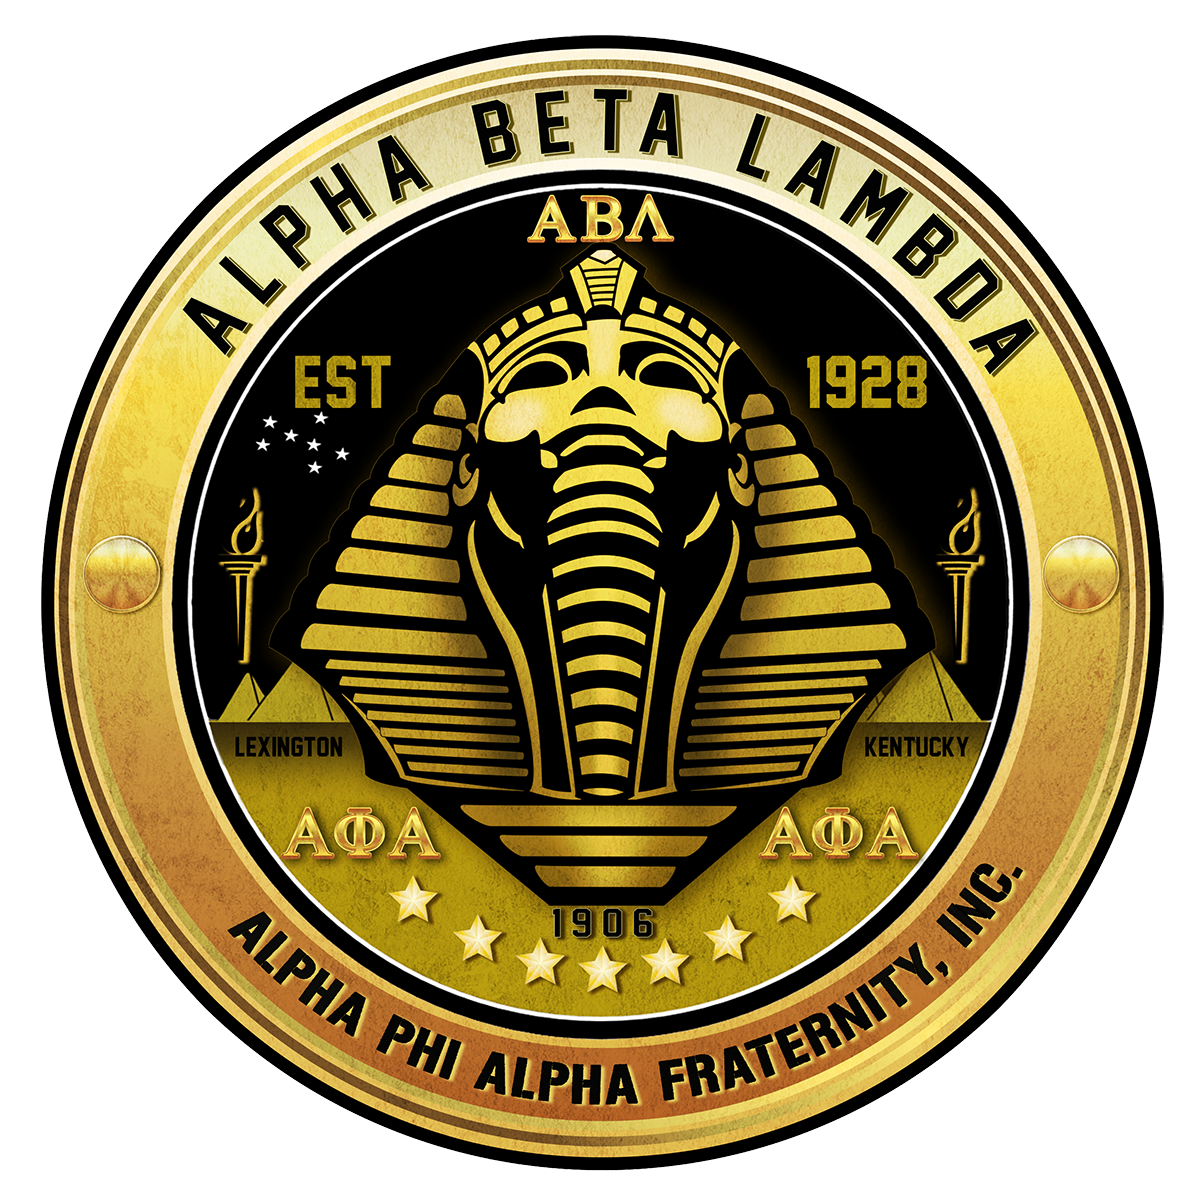 ABL Logo Board Meeting - Alpha Beta Lambda